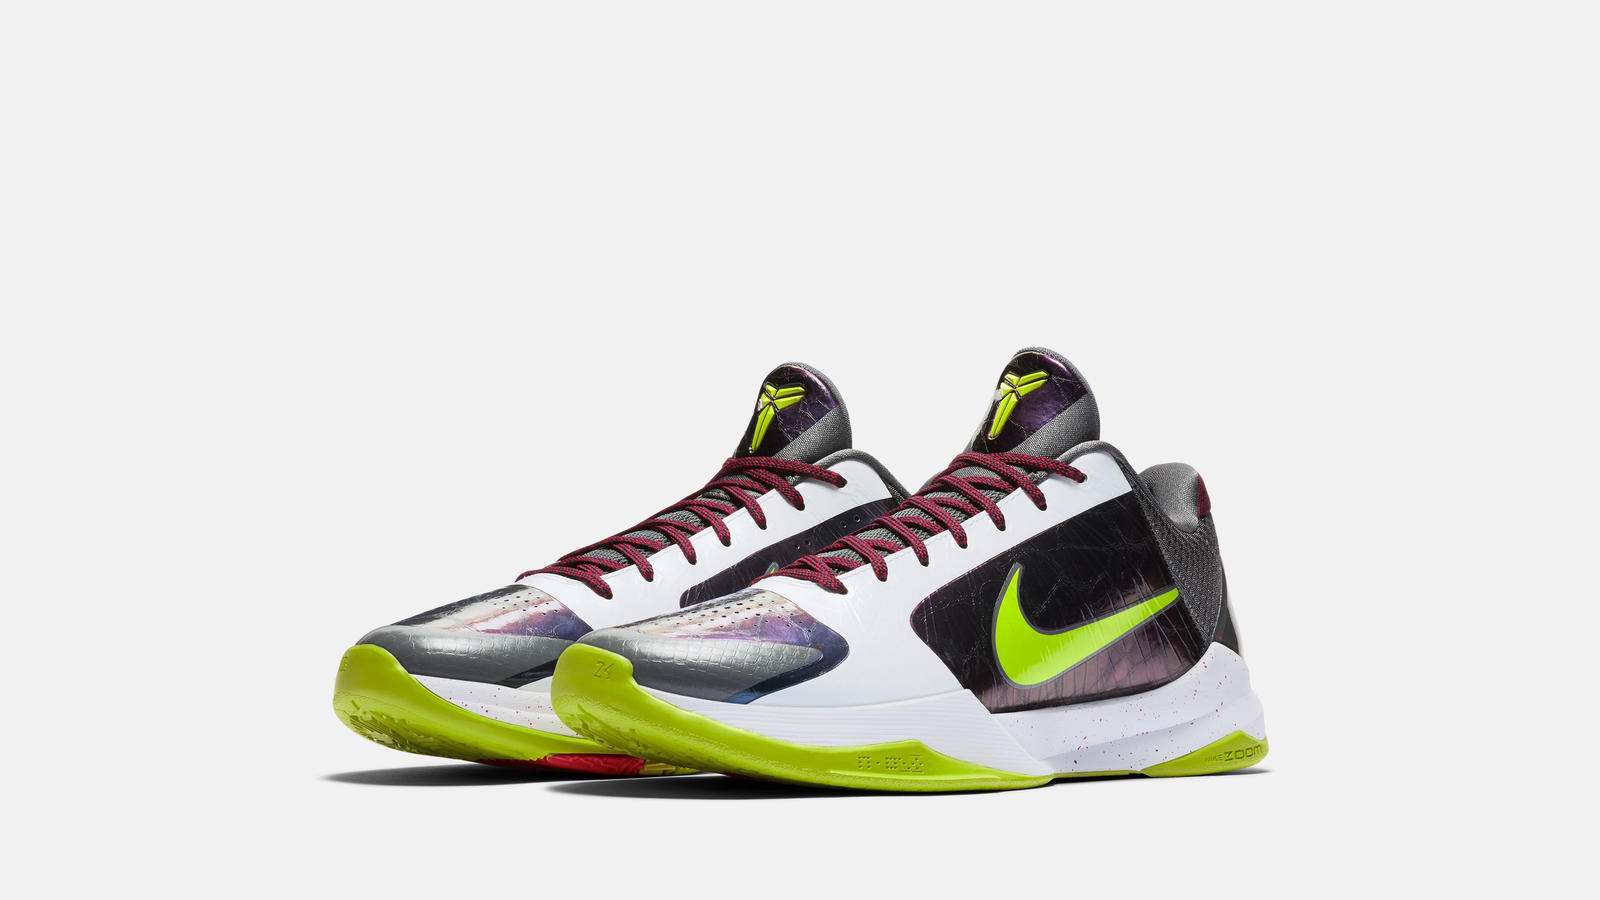 nike-kobe-5-protro-chaos-official-images-and-release-date